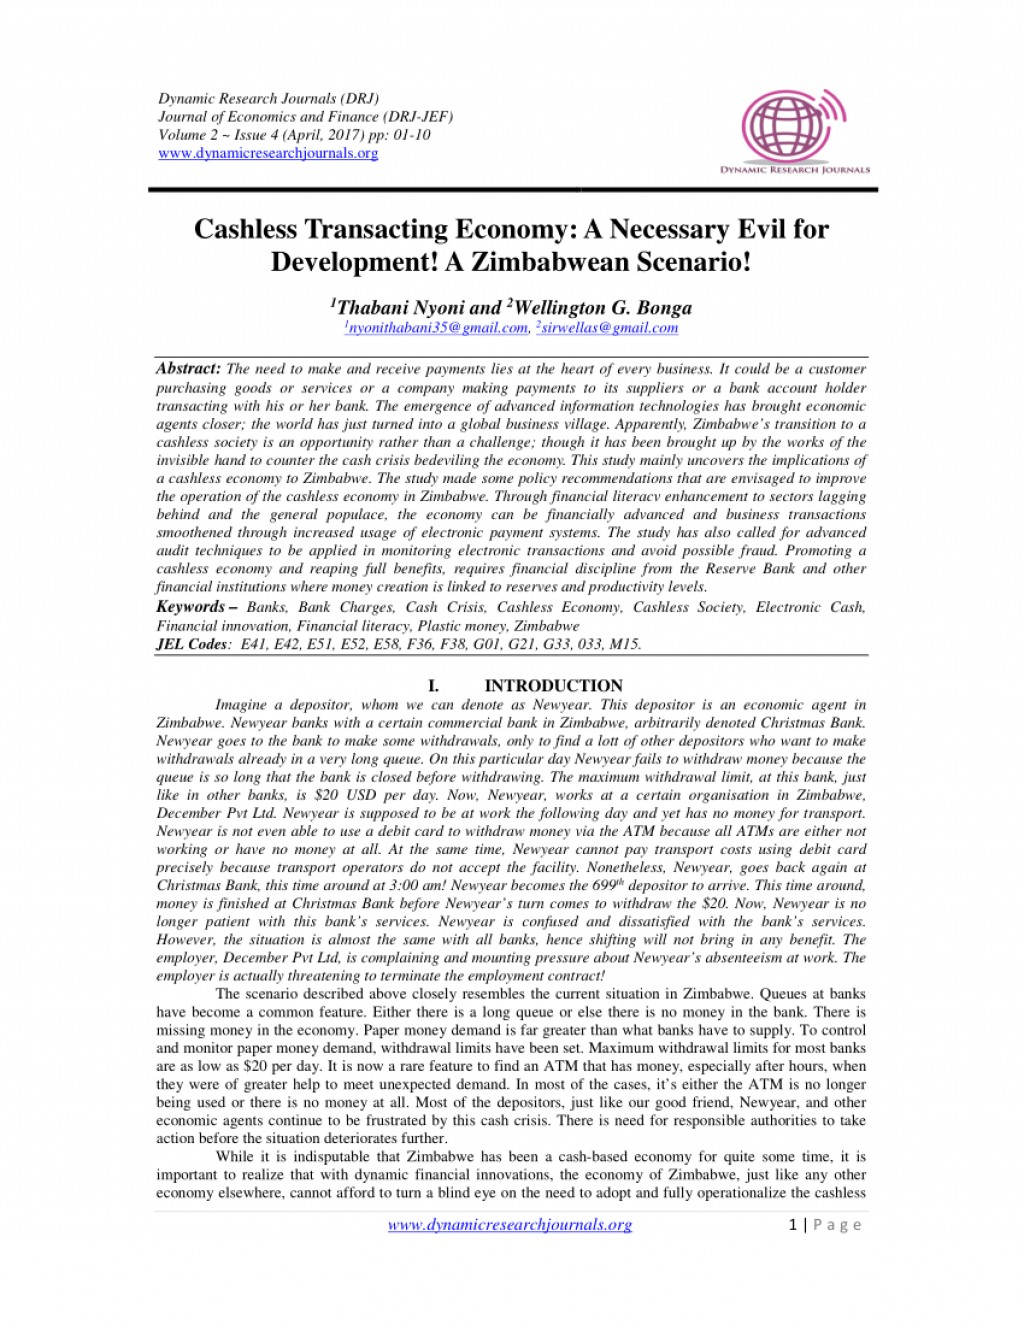 007 Cashless Economy Research Paper Frightening Papers Pdf Cash To Large